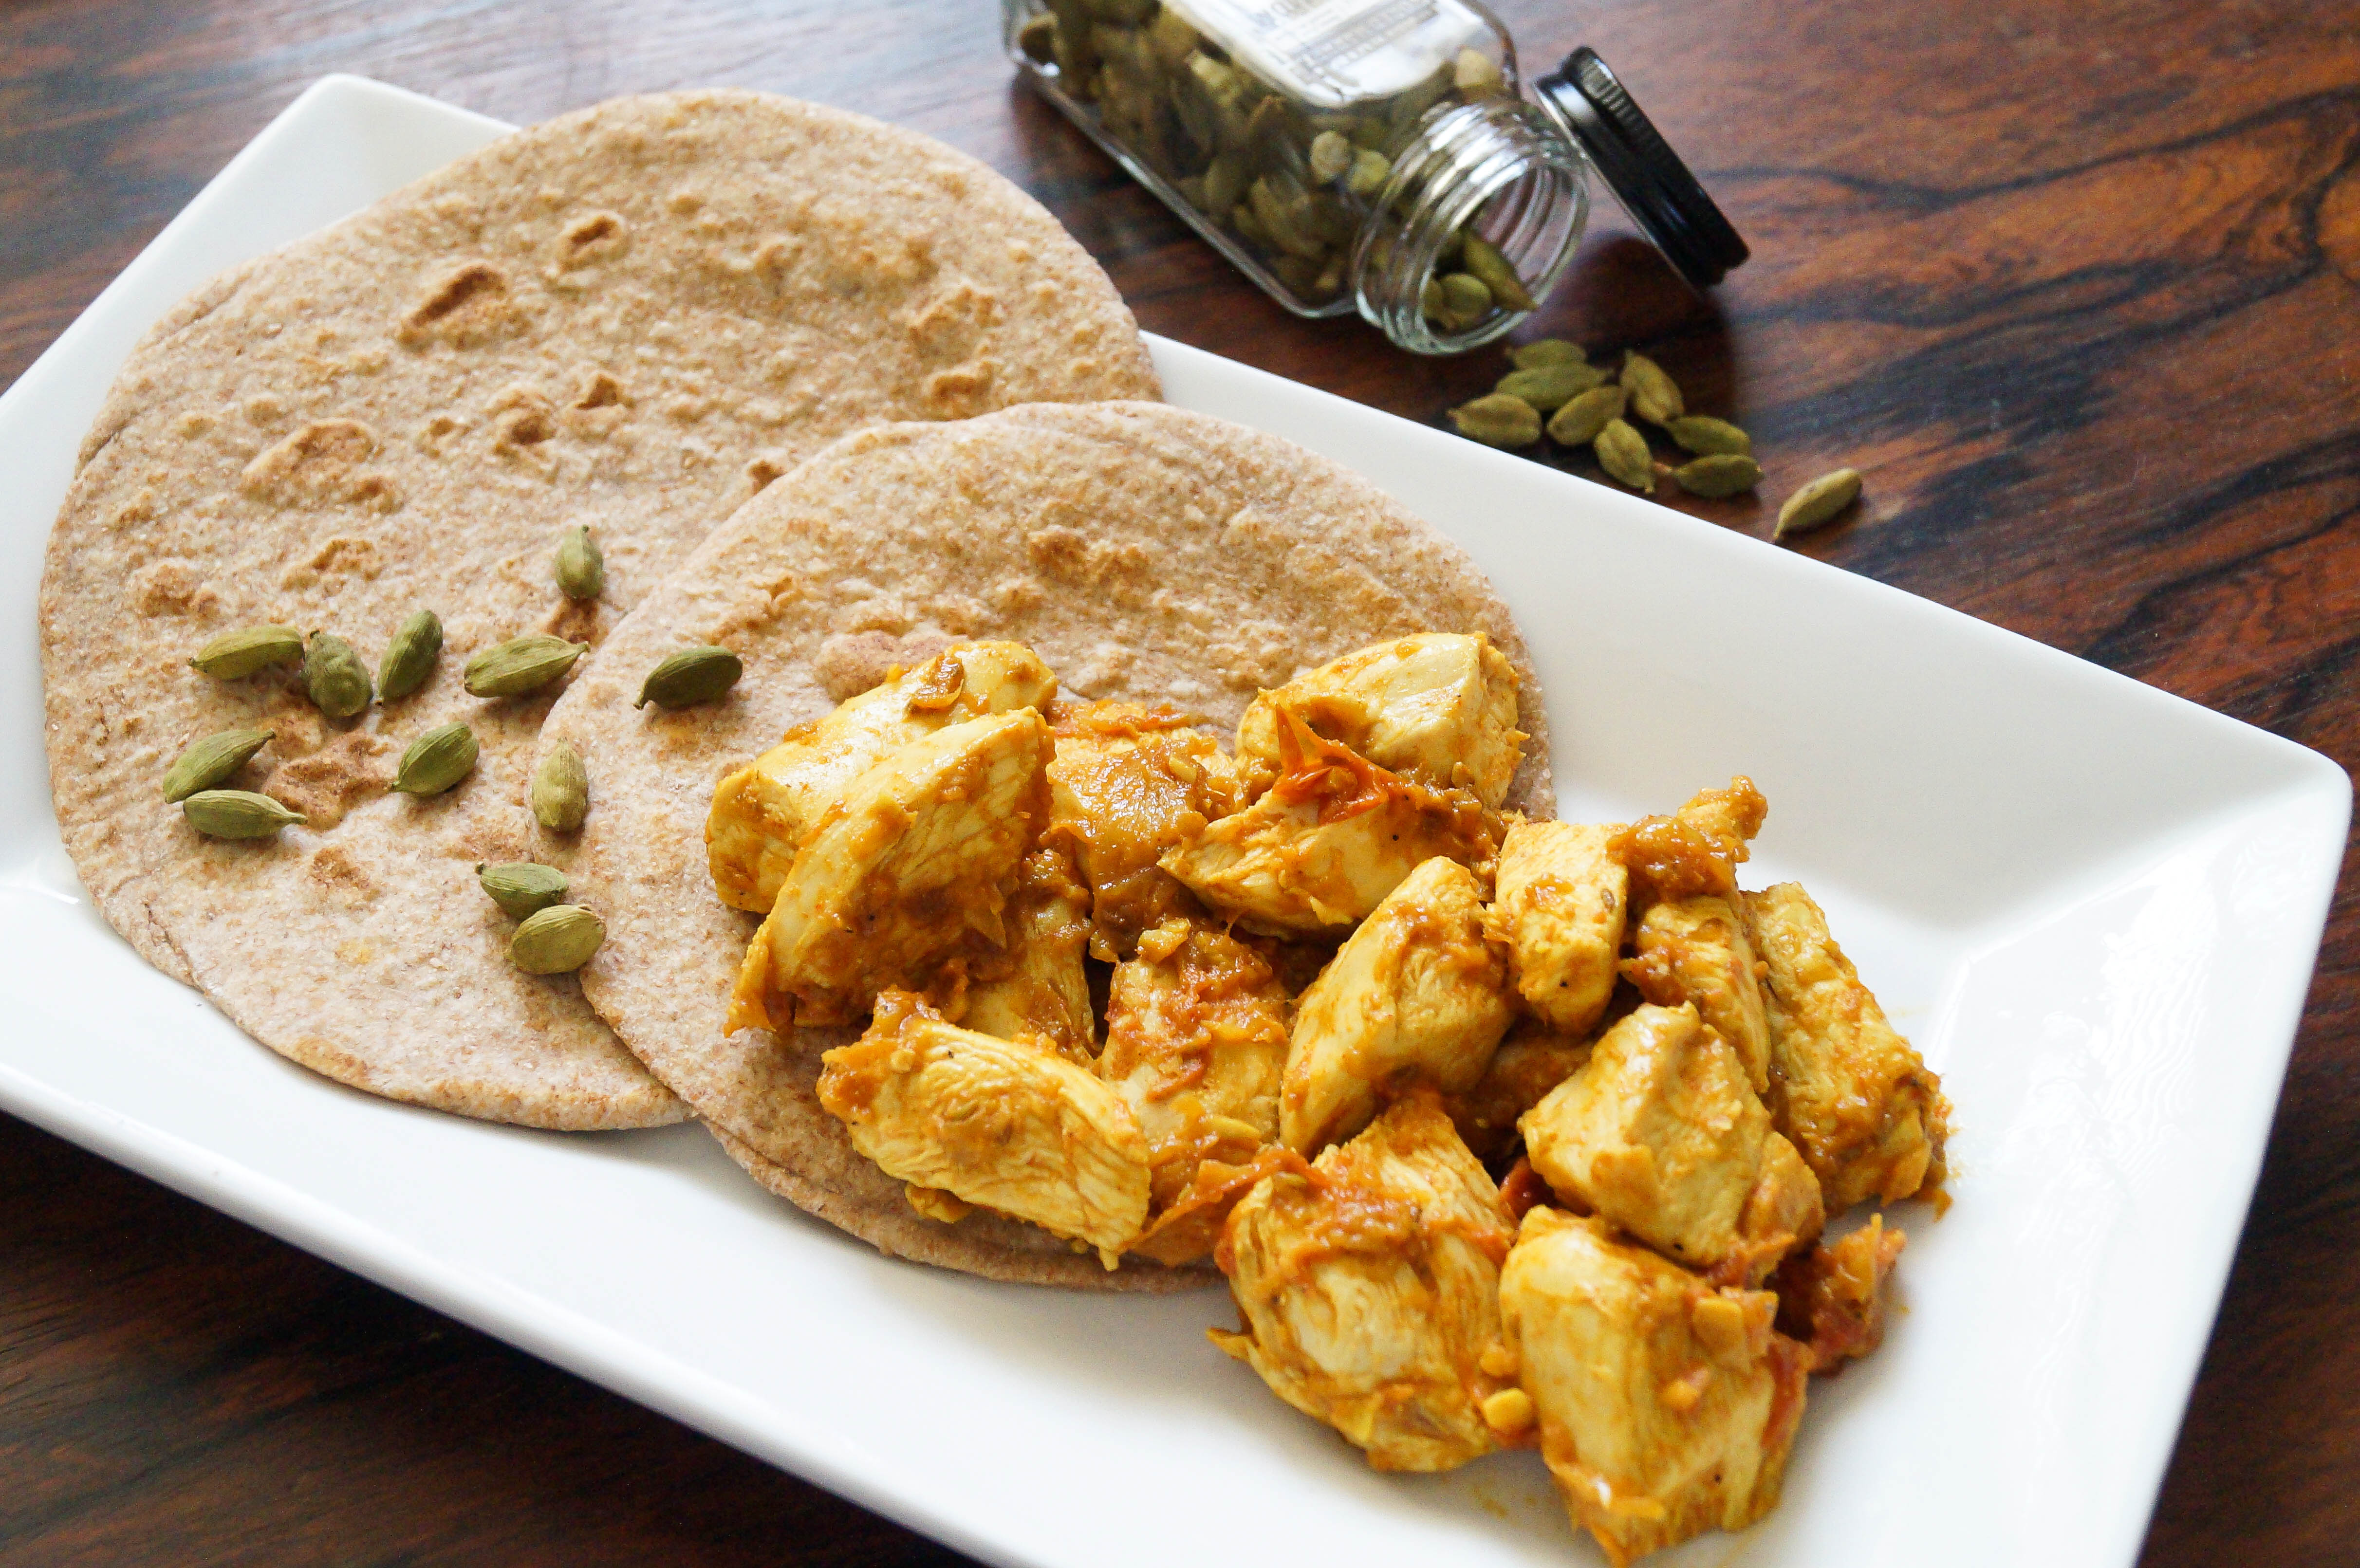 Masala Murgh (Indian Cardamom Chicken)